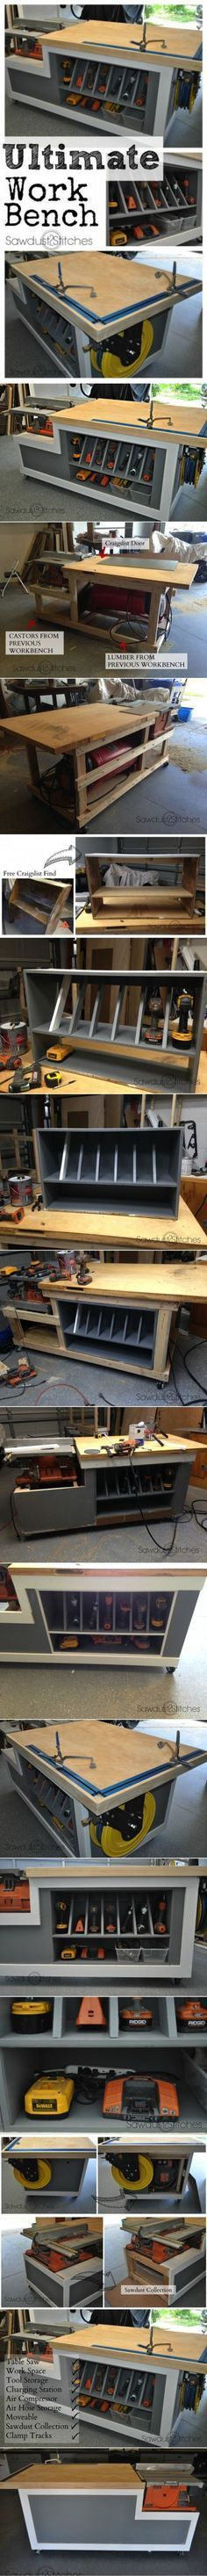 Ted's Woodworking Plans - Ultimate Work Bench Get A Lifetime Of Project Ideas & Inspiration! Step By Step Woodworking Plans Workshop Storage, Workshop Organization, Home Workshop, Garage Workshop, Workshop Ideas, Urban Workshop, Woodworking Workshop, Woodworking Bench, Woodworking Shop